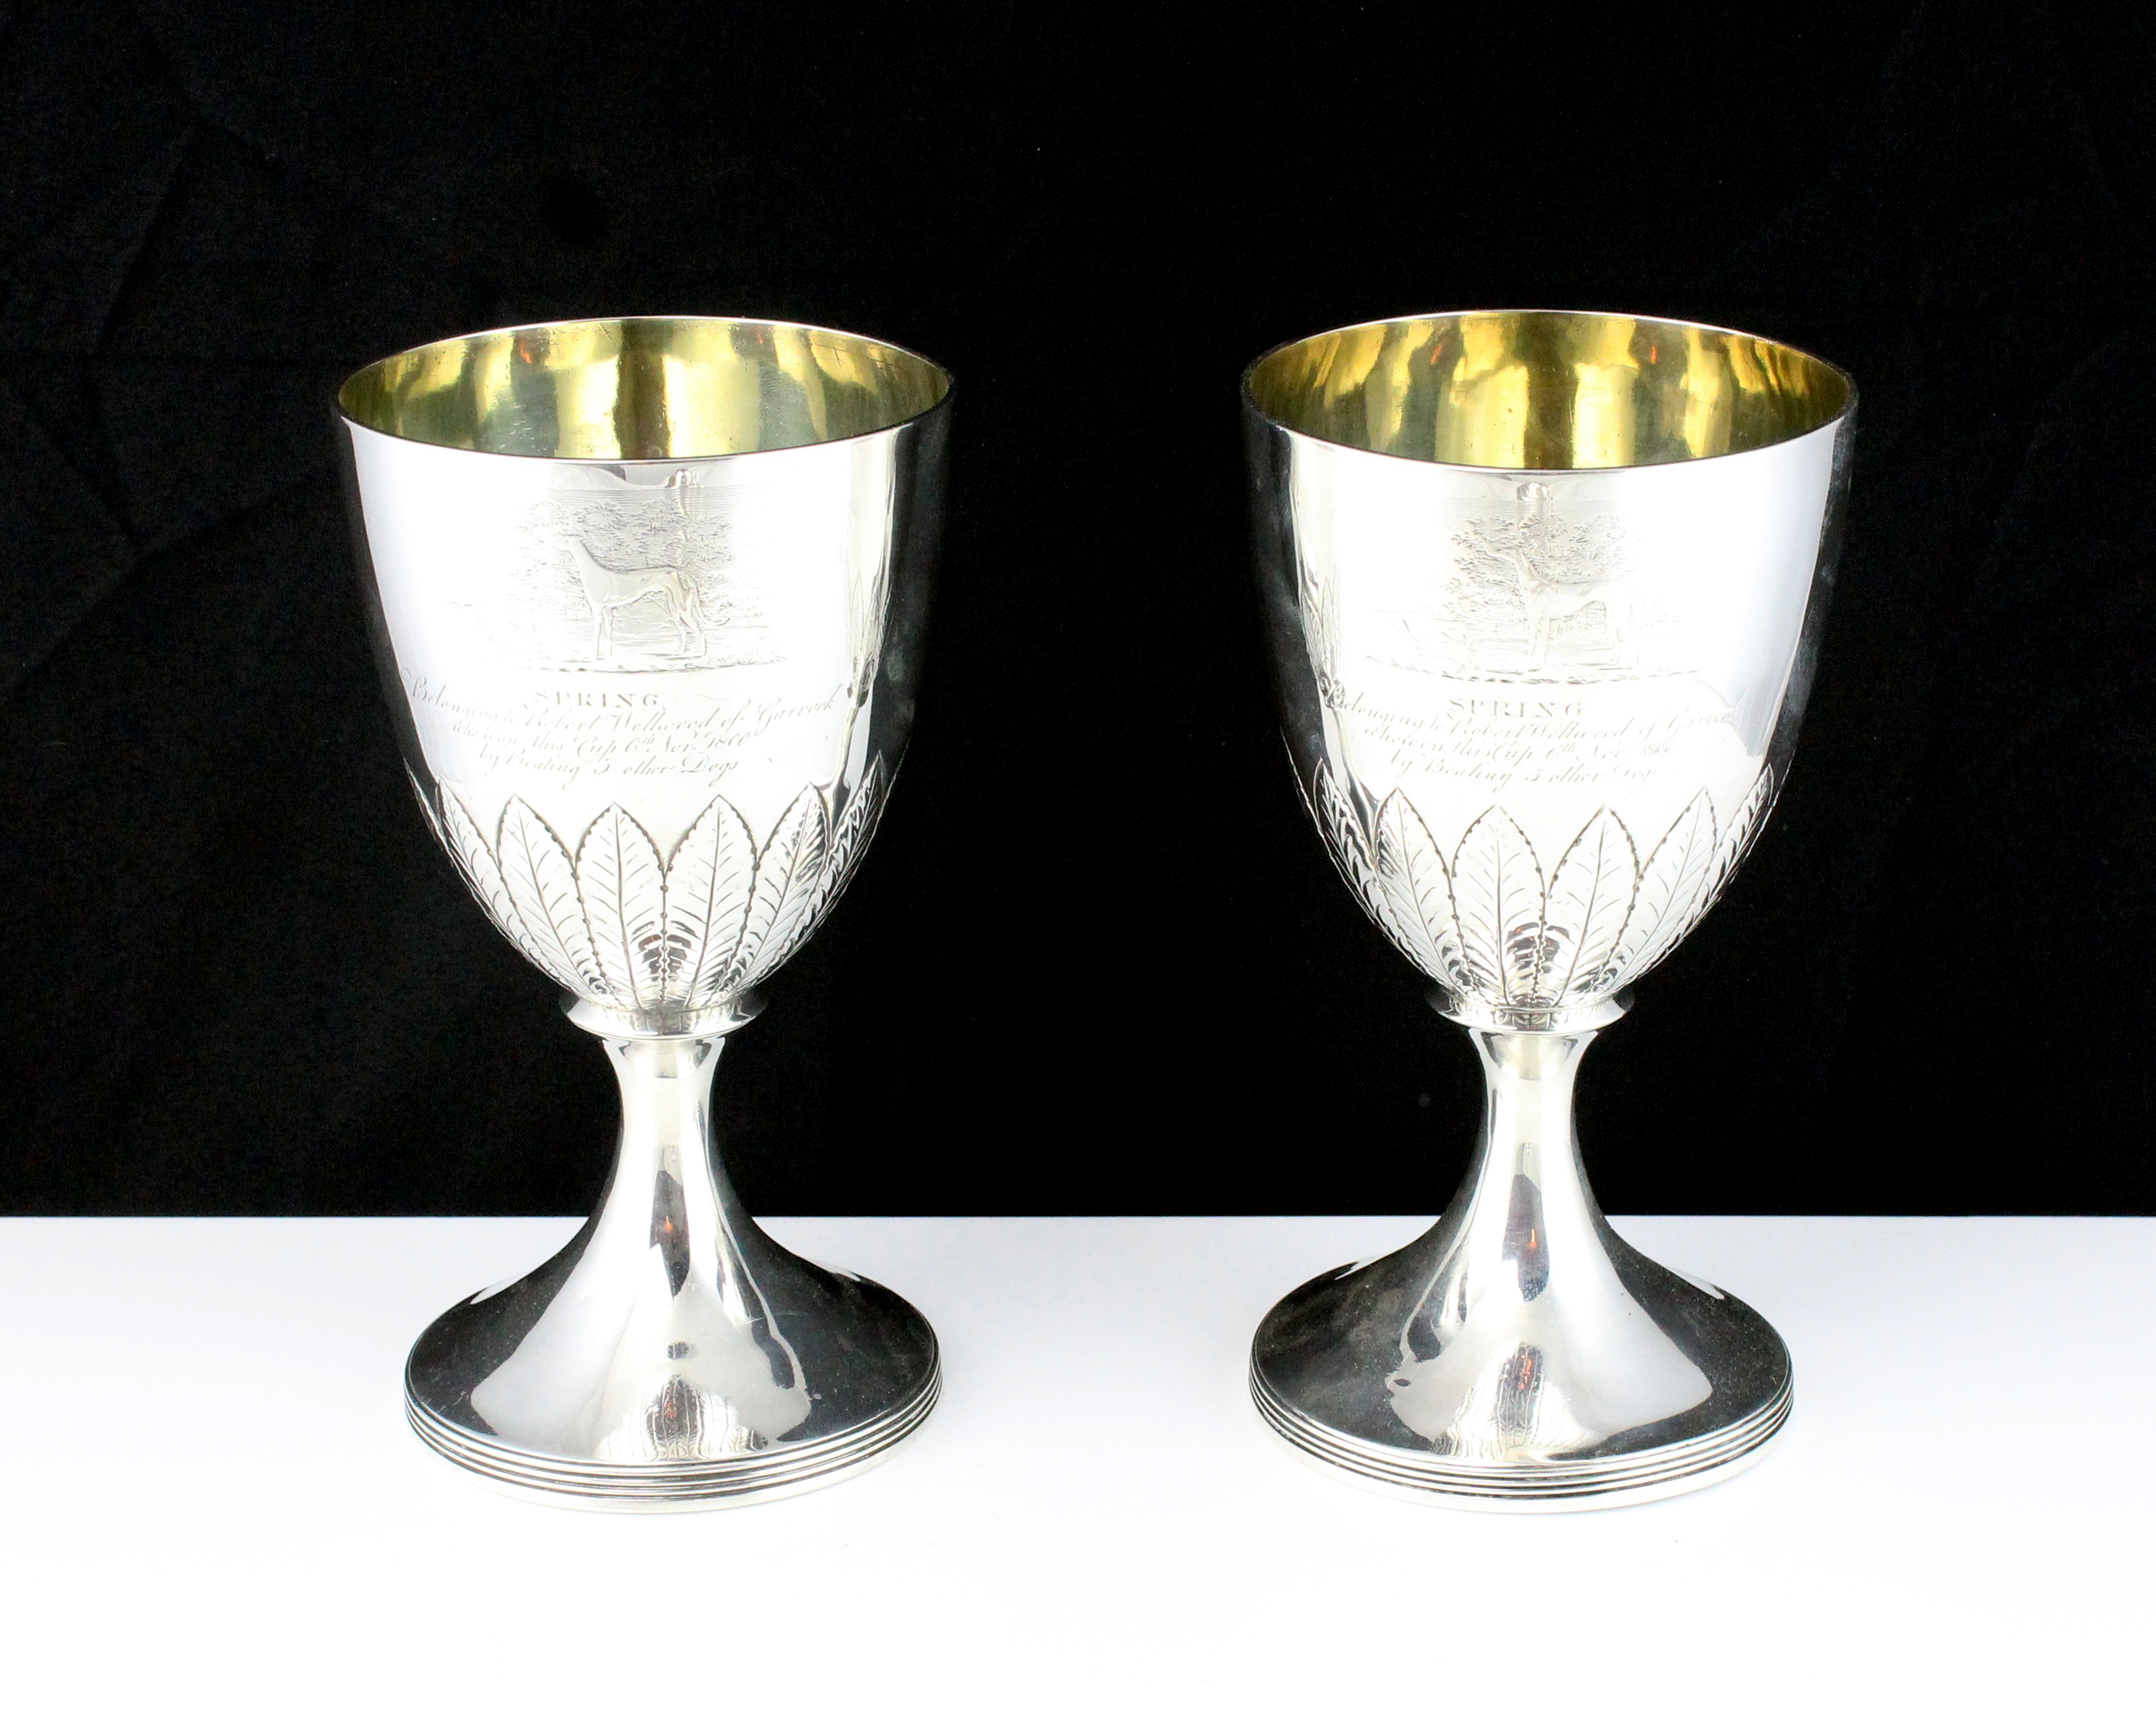 A pair of antique George III Scottish Sterling Silver goblets by McHattie & Fenwick, Edinburgh